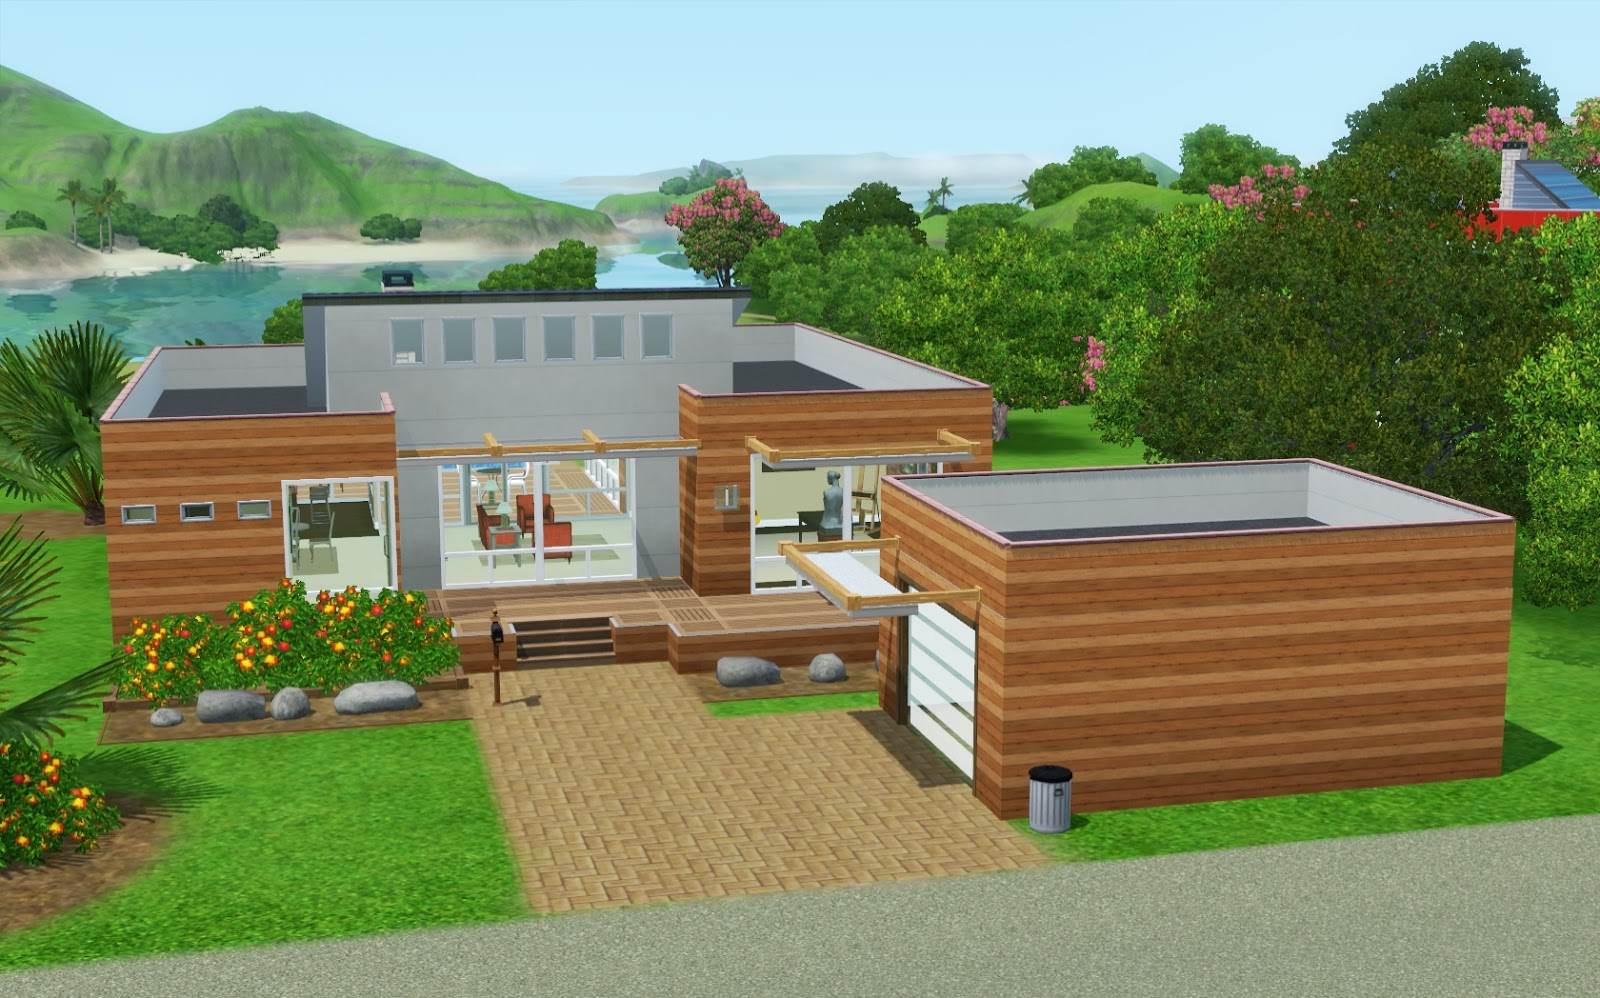 Amusing modern houses sims 3 gallery simple design home robaxin25 summer s little sims 3 garden isla paradiso the sims 3 island sisterspd